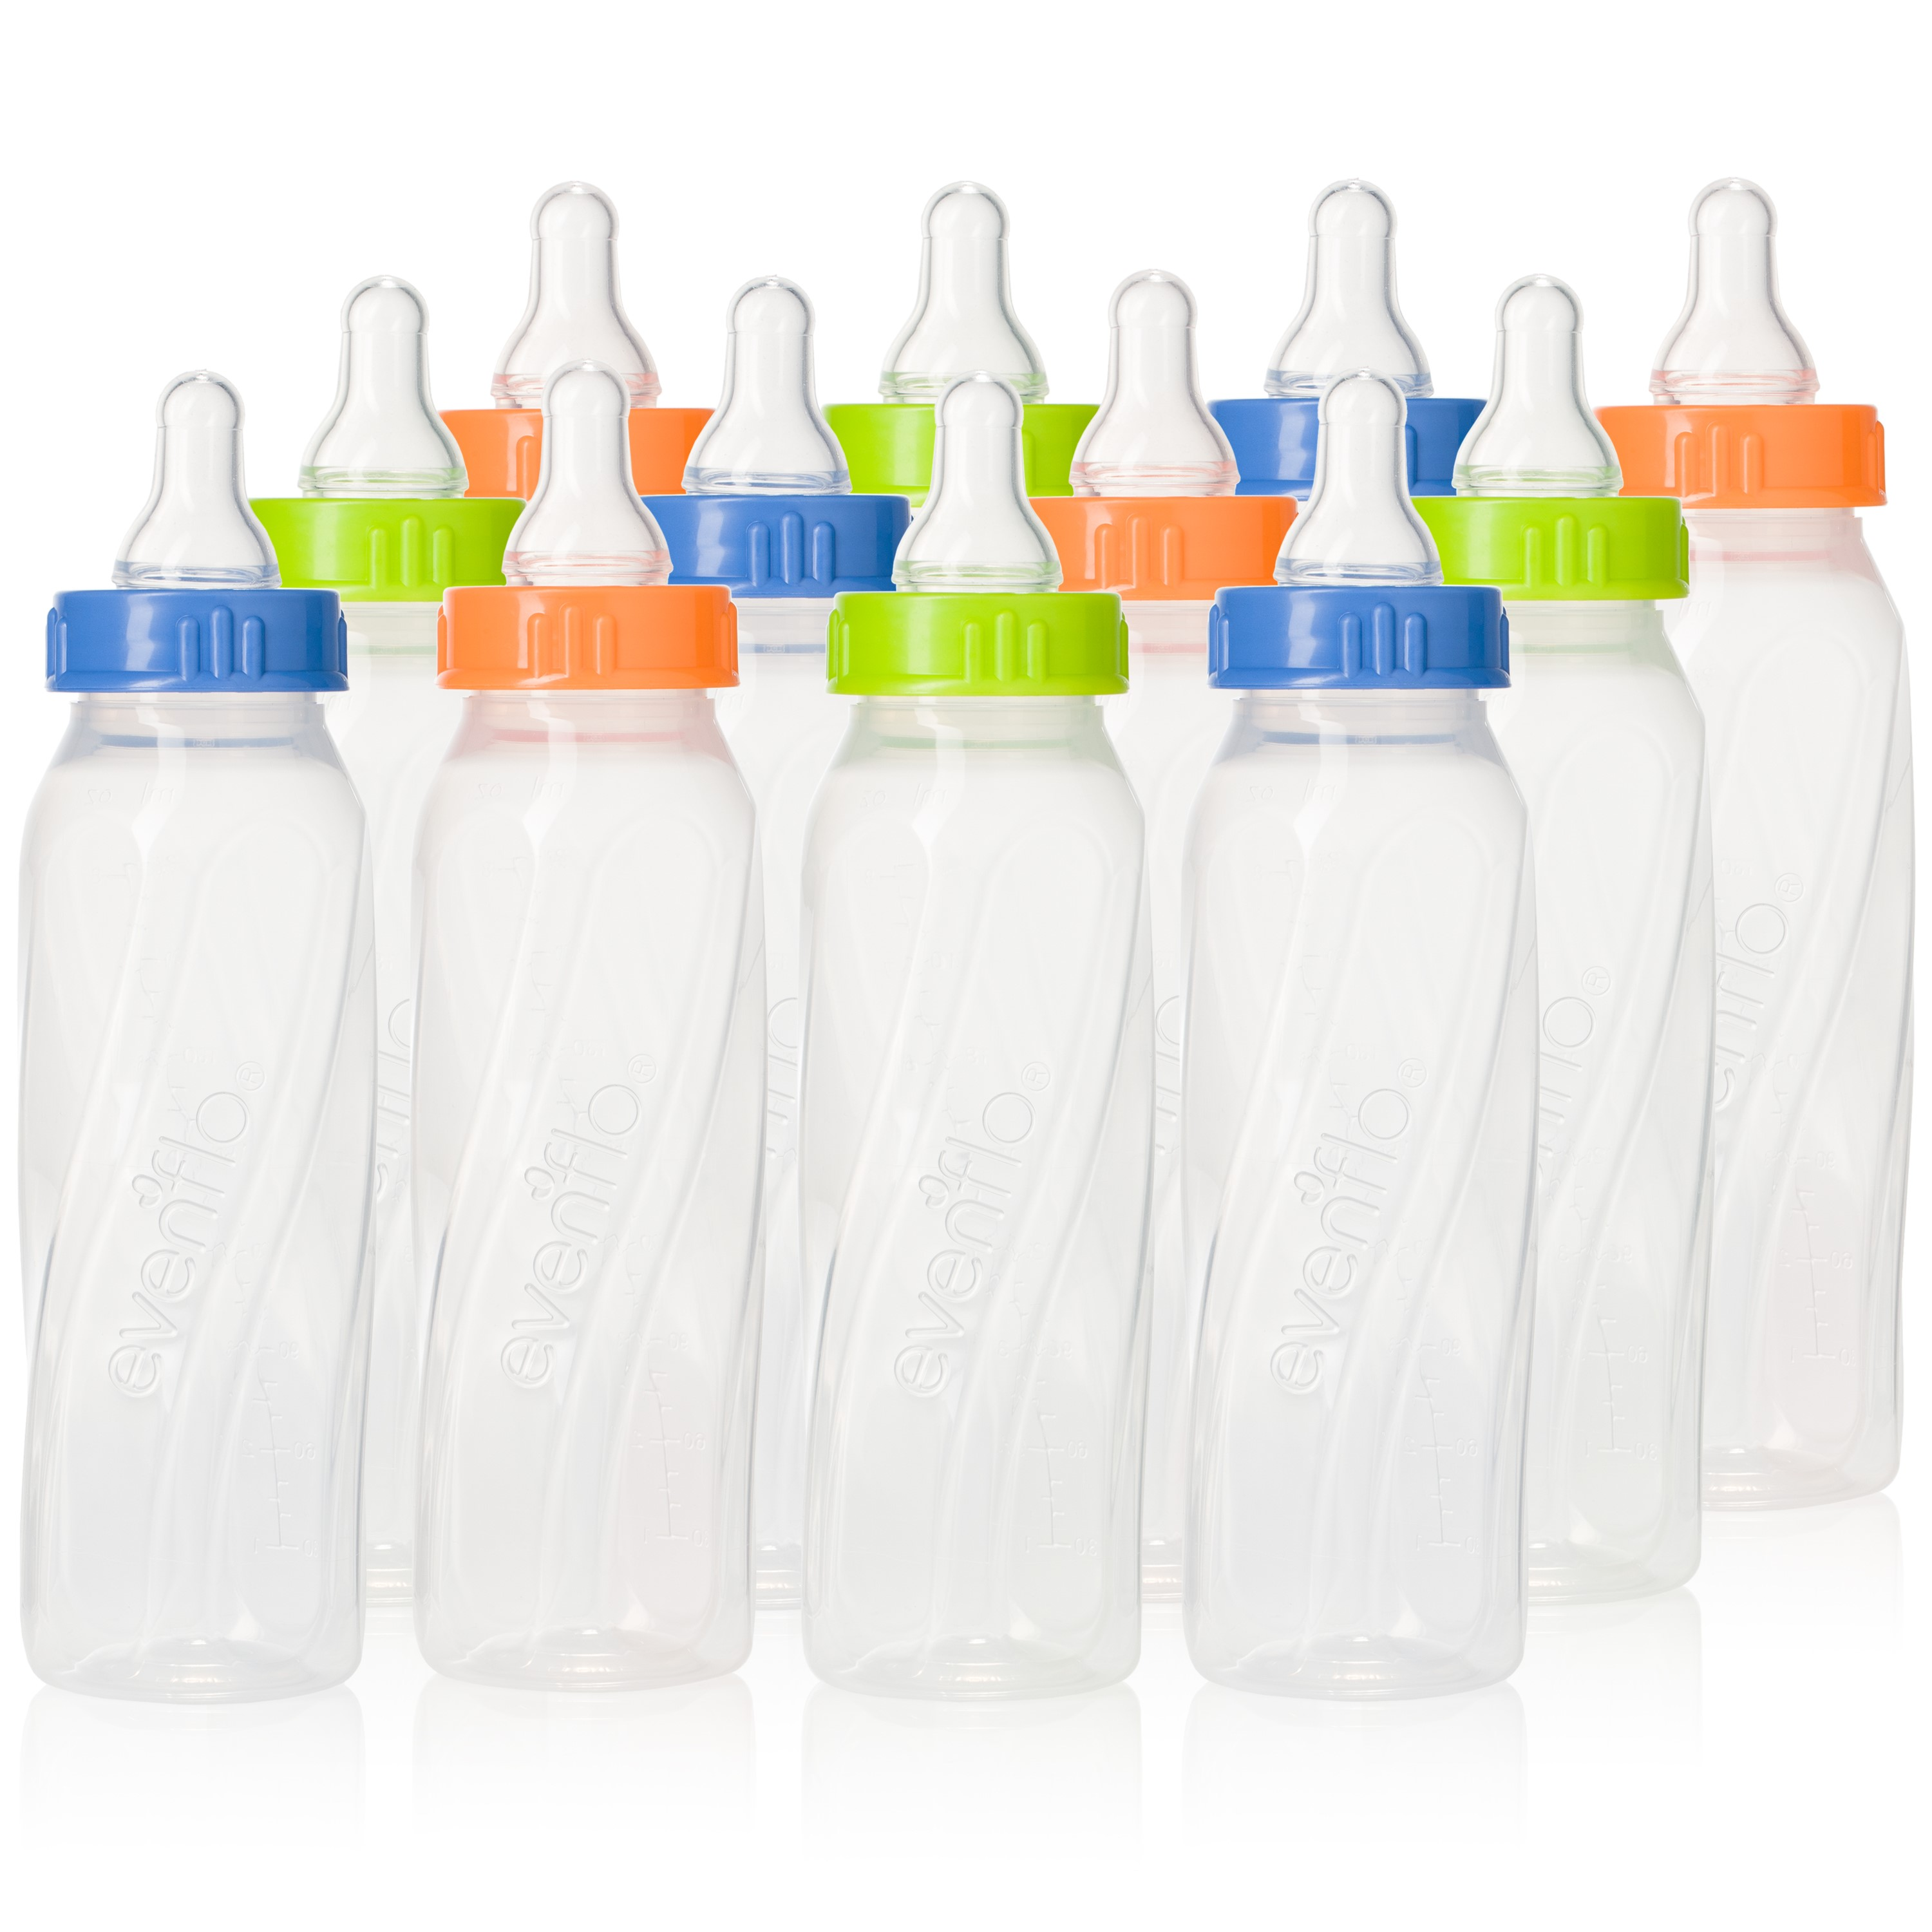 Evenflo Classic 8 oz Bottles 1 0-3 m Slow